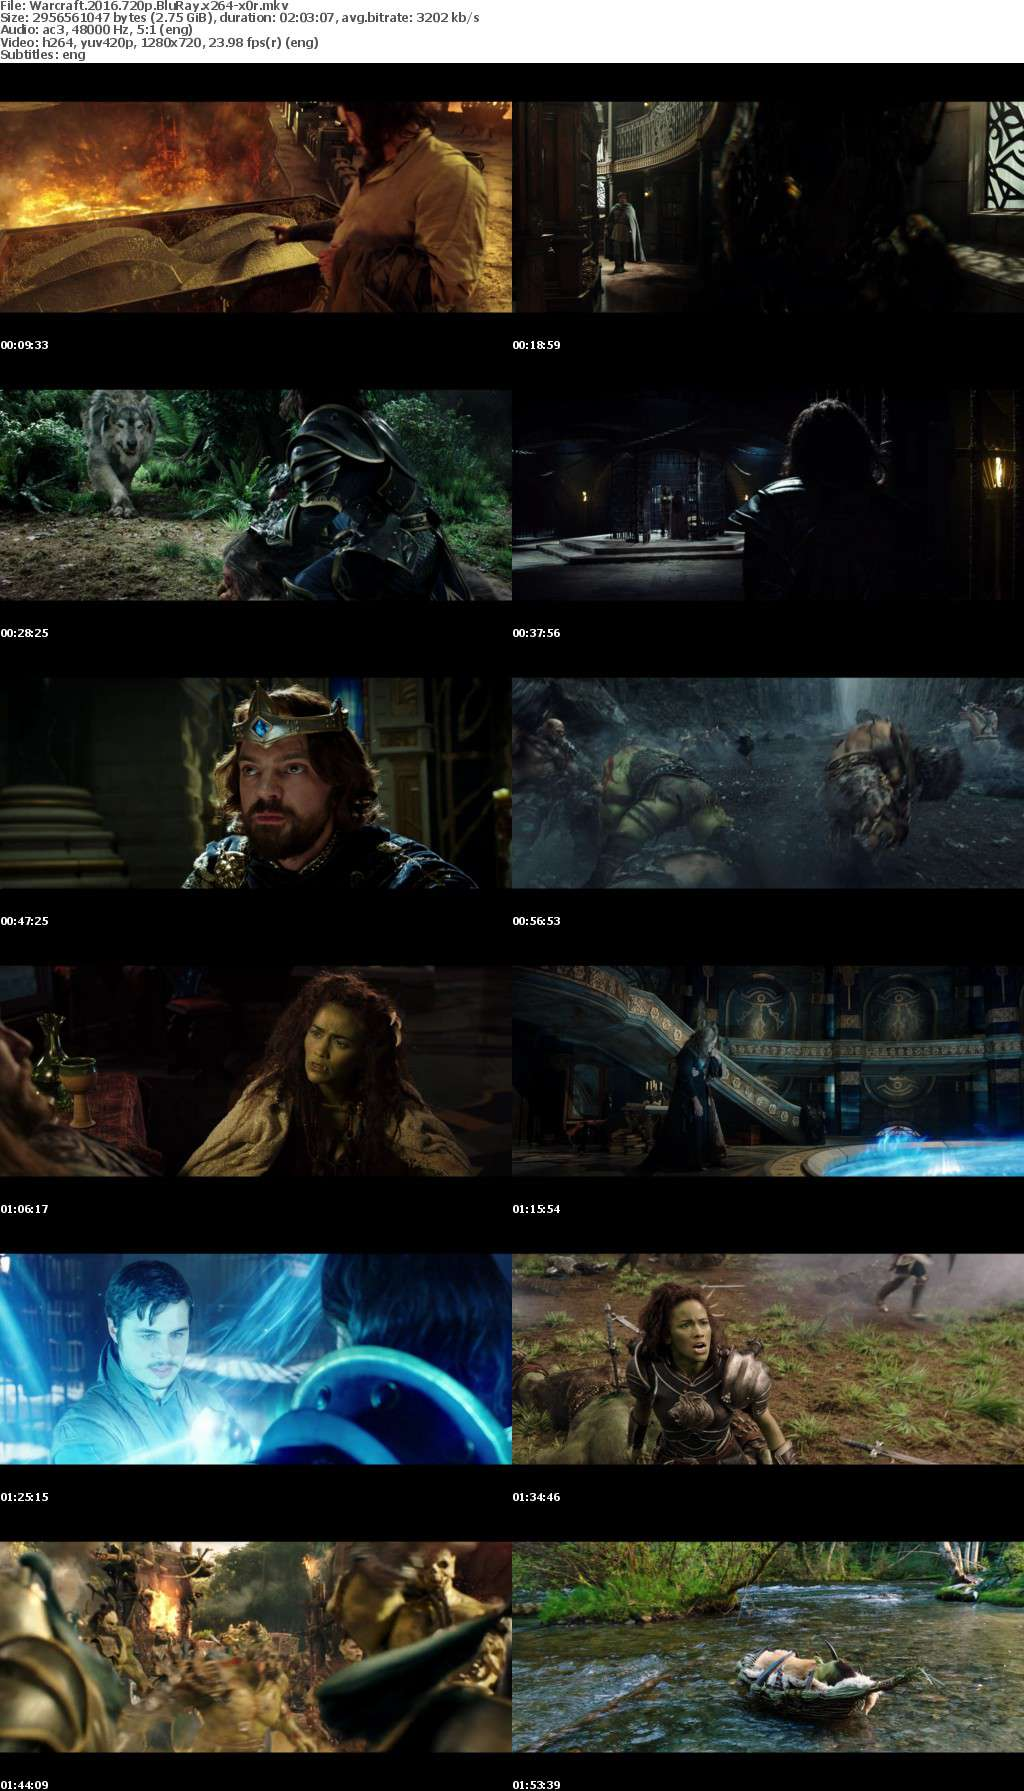 Warcraft 2016 720p BluRay x264 x0r